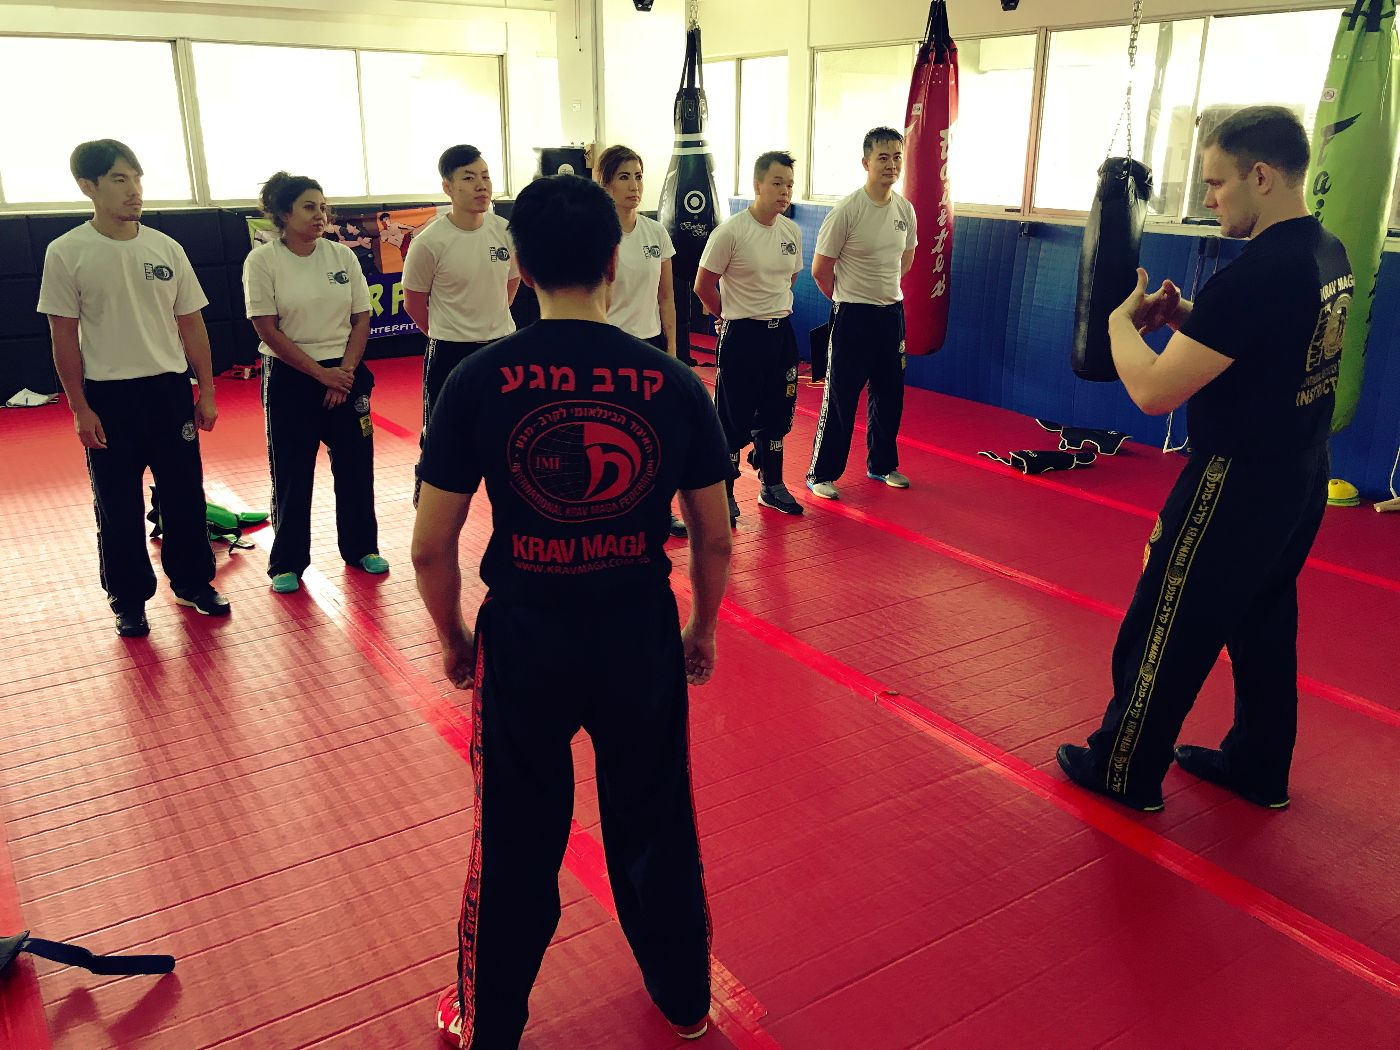 Krav Maga Instructor explaining to Krav Maga students how the technique works